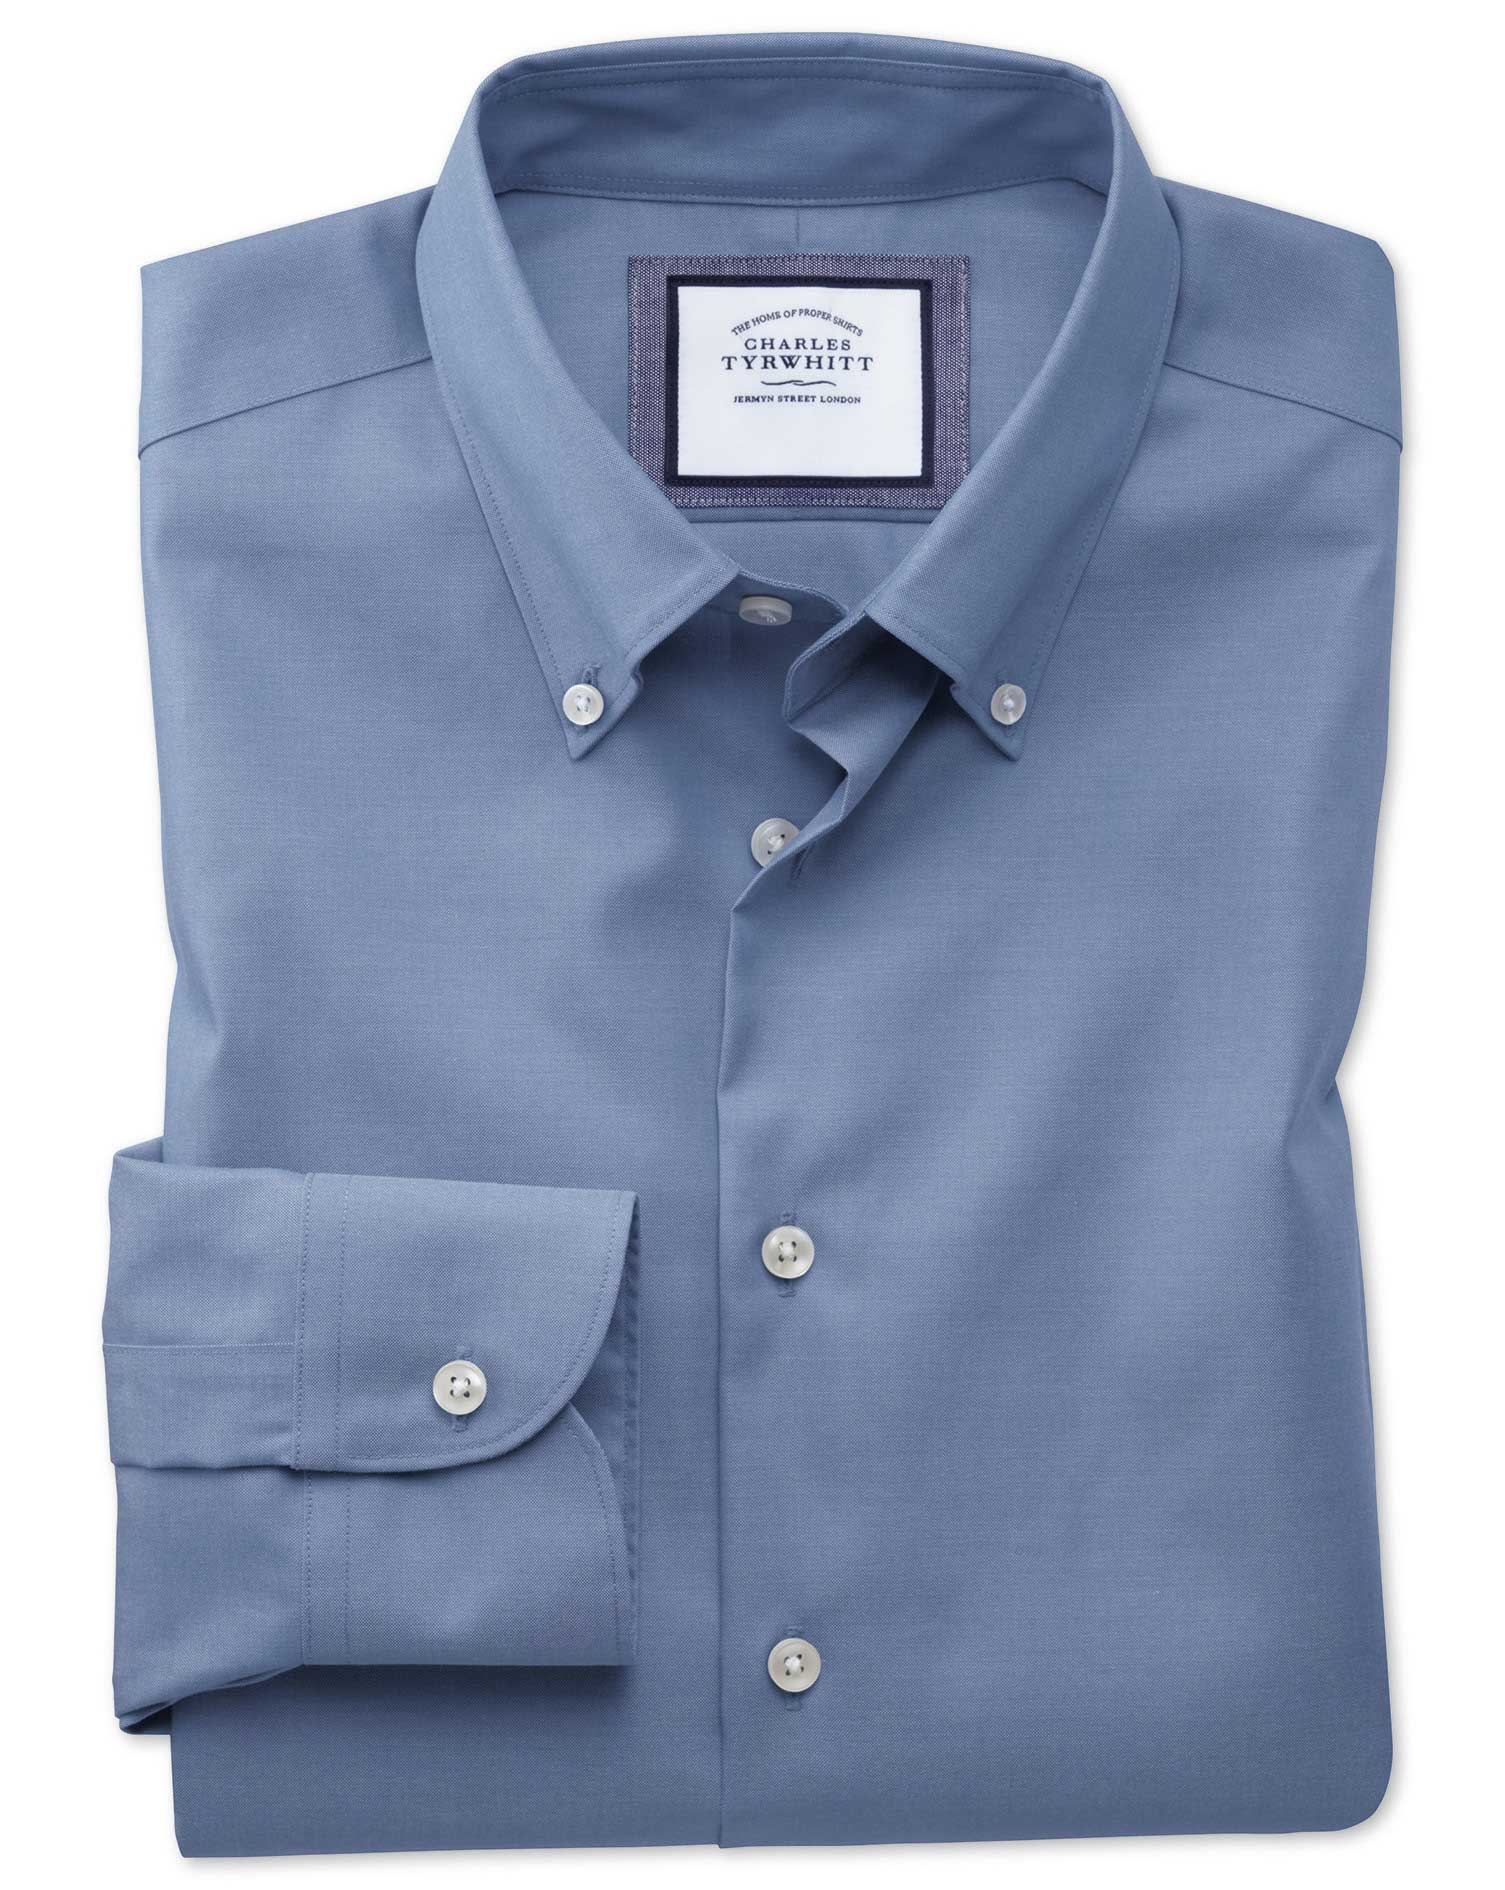 Extra Slim Fit Button-Down Business Casual Non-Iron Mid Blue Cotton Formal Shirt Single Cuff Size 17